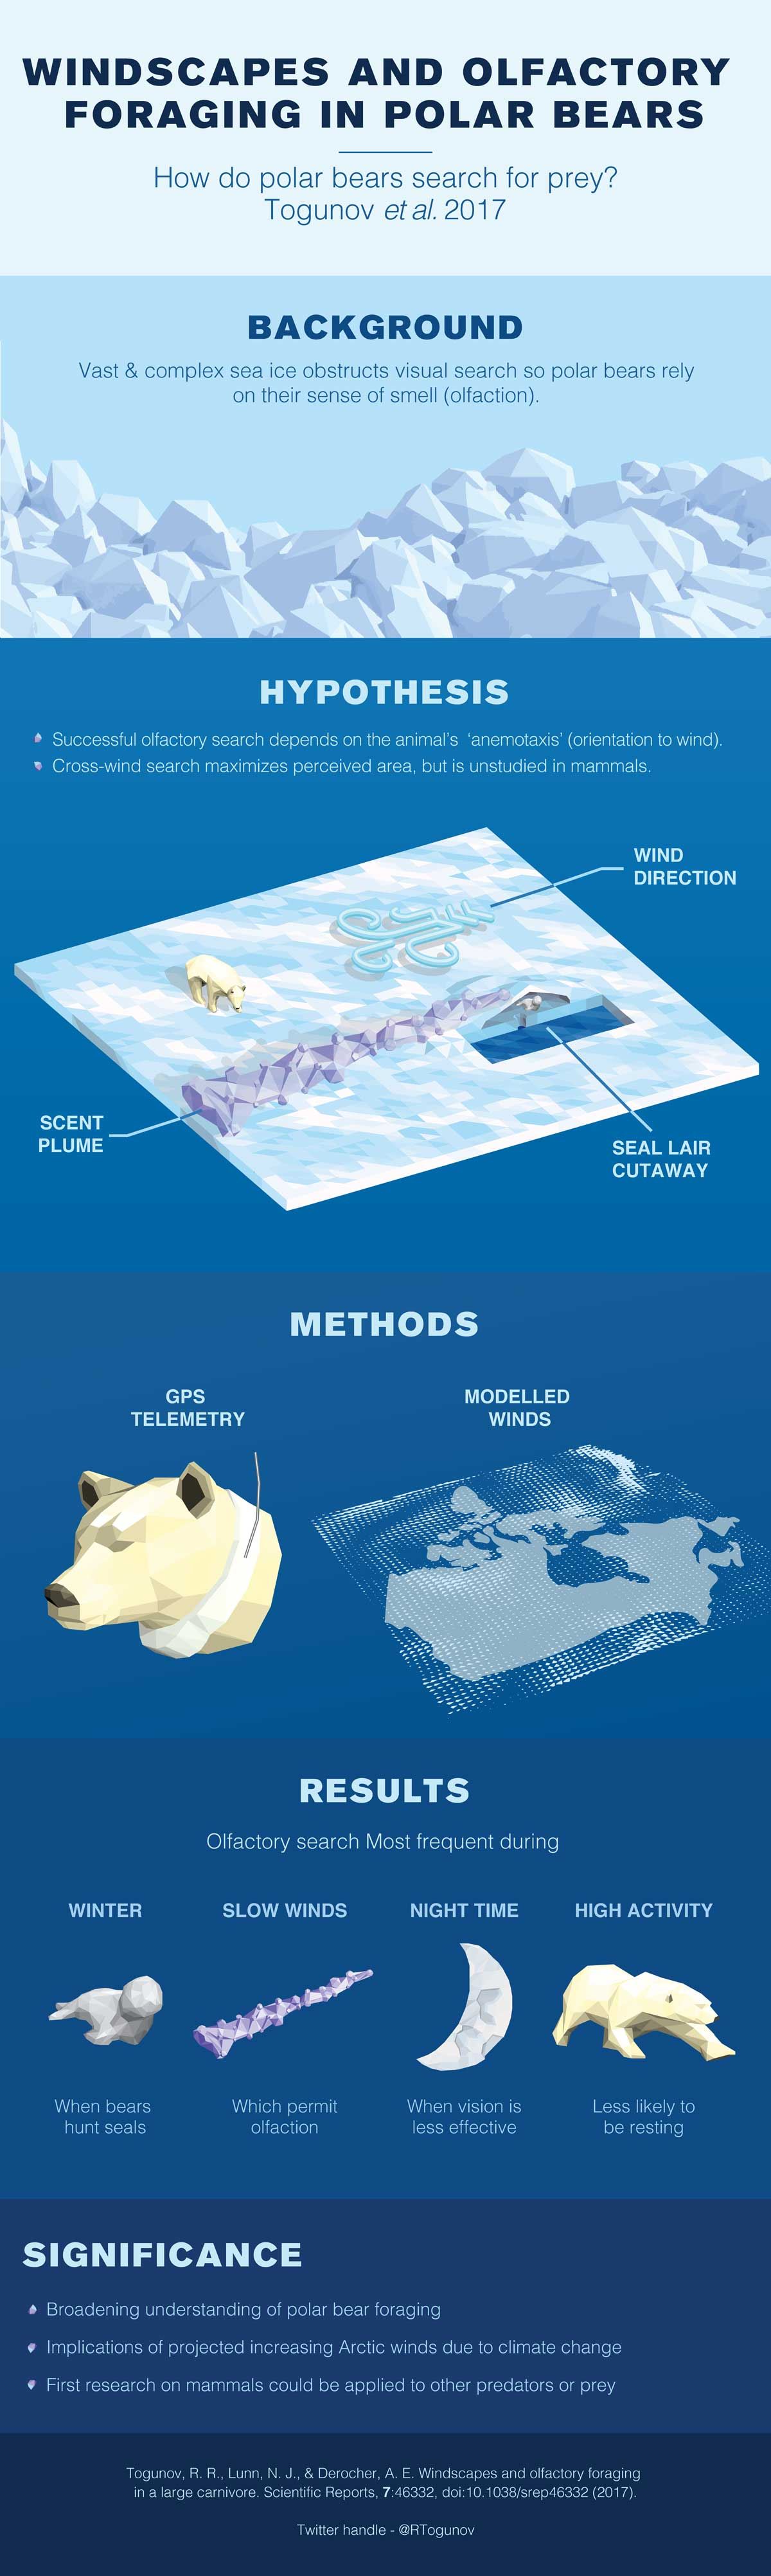 Infographic describing olfactory foraging in polar bears who use their nose and the power of the wind to hunt for the prey.